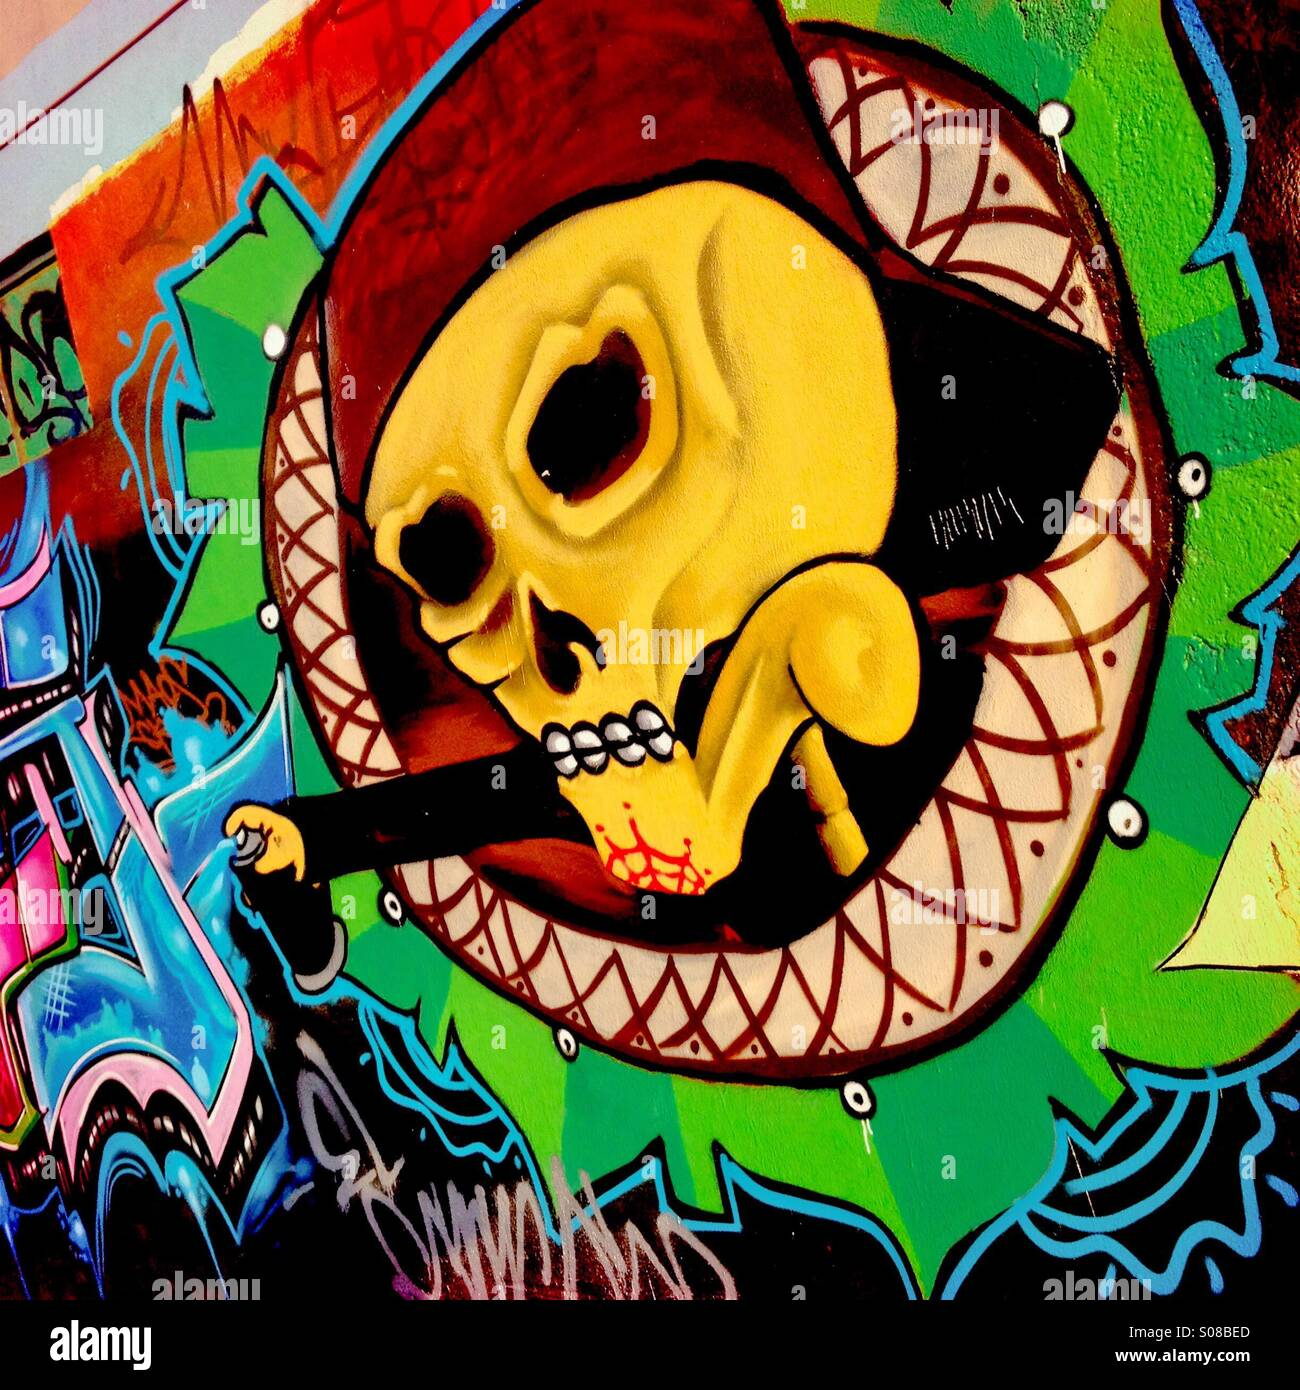 A skull graffiti artwork, illustrating the extensive Death worship culture in Mexico, appears on the wall in Morelia, - Stock Image